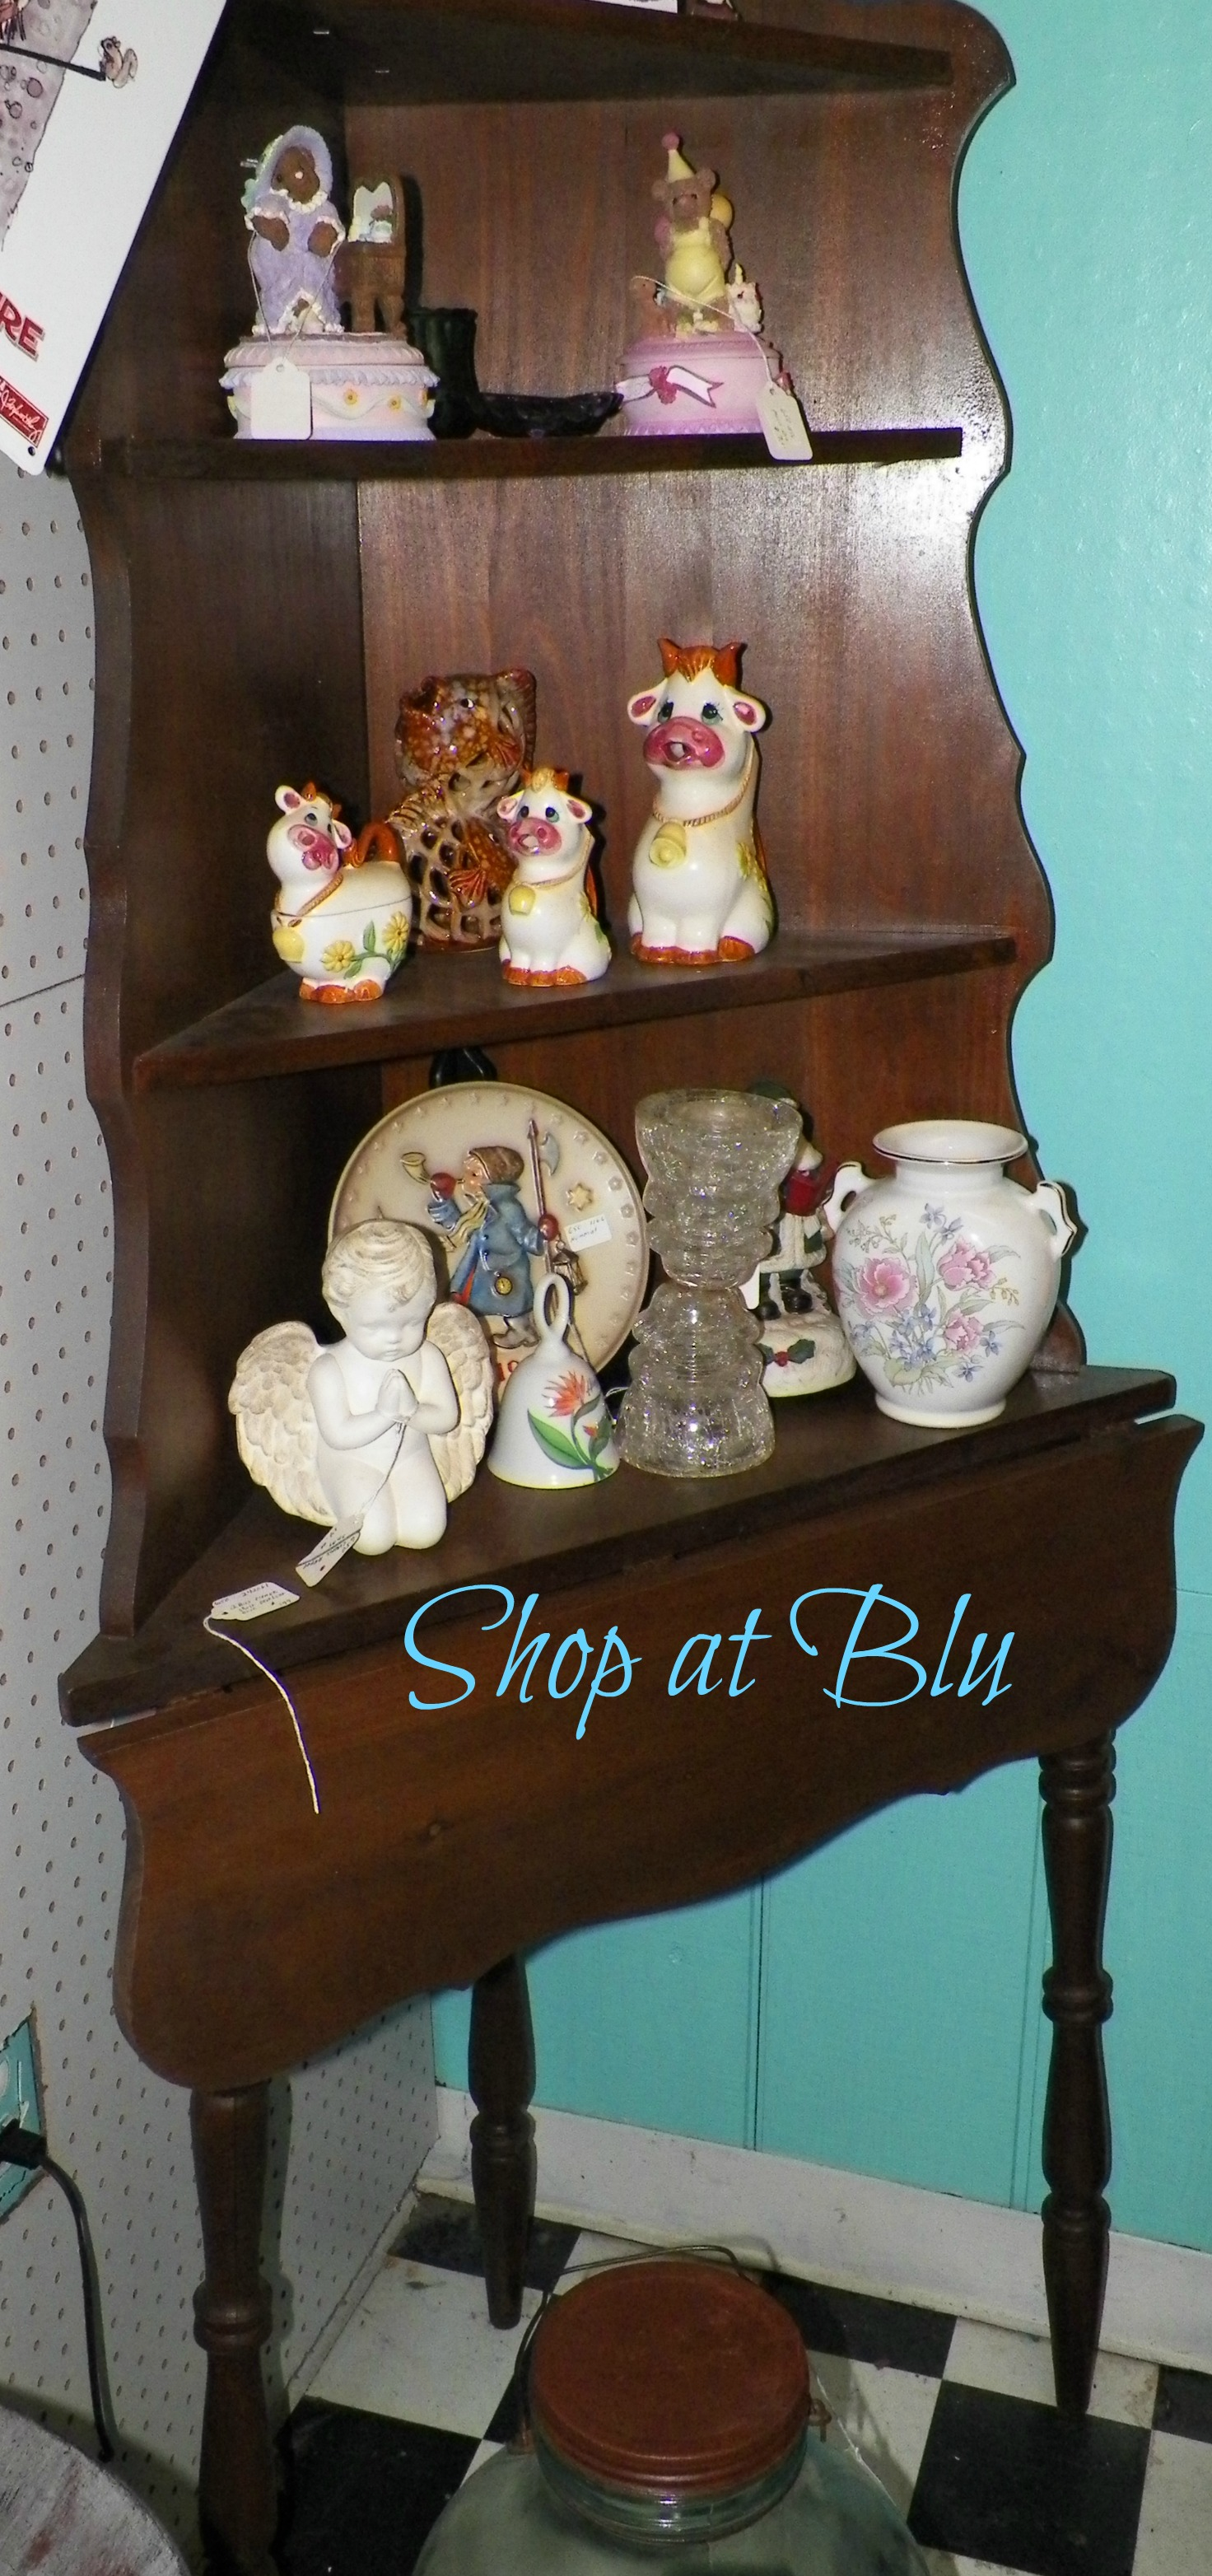 shop-at-blu-the-blue-building-corner-shelf-unit